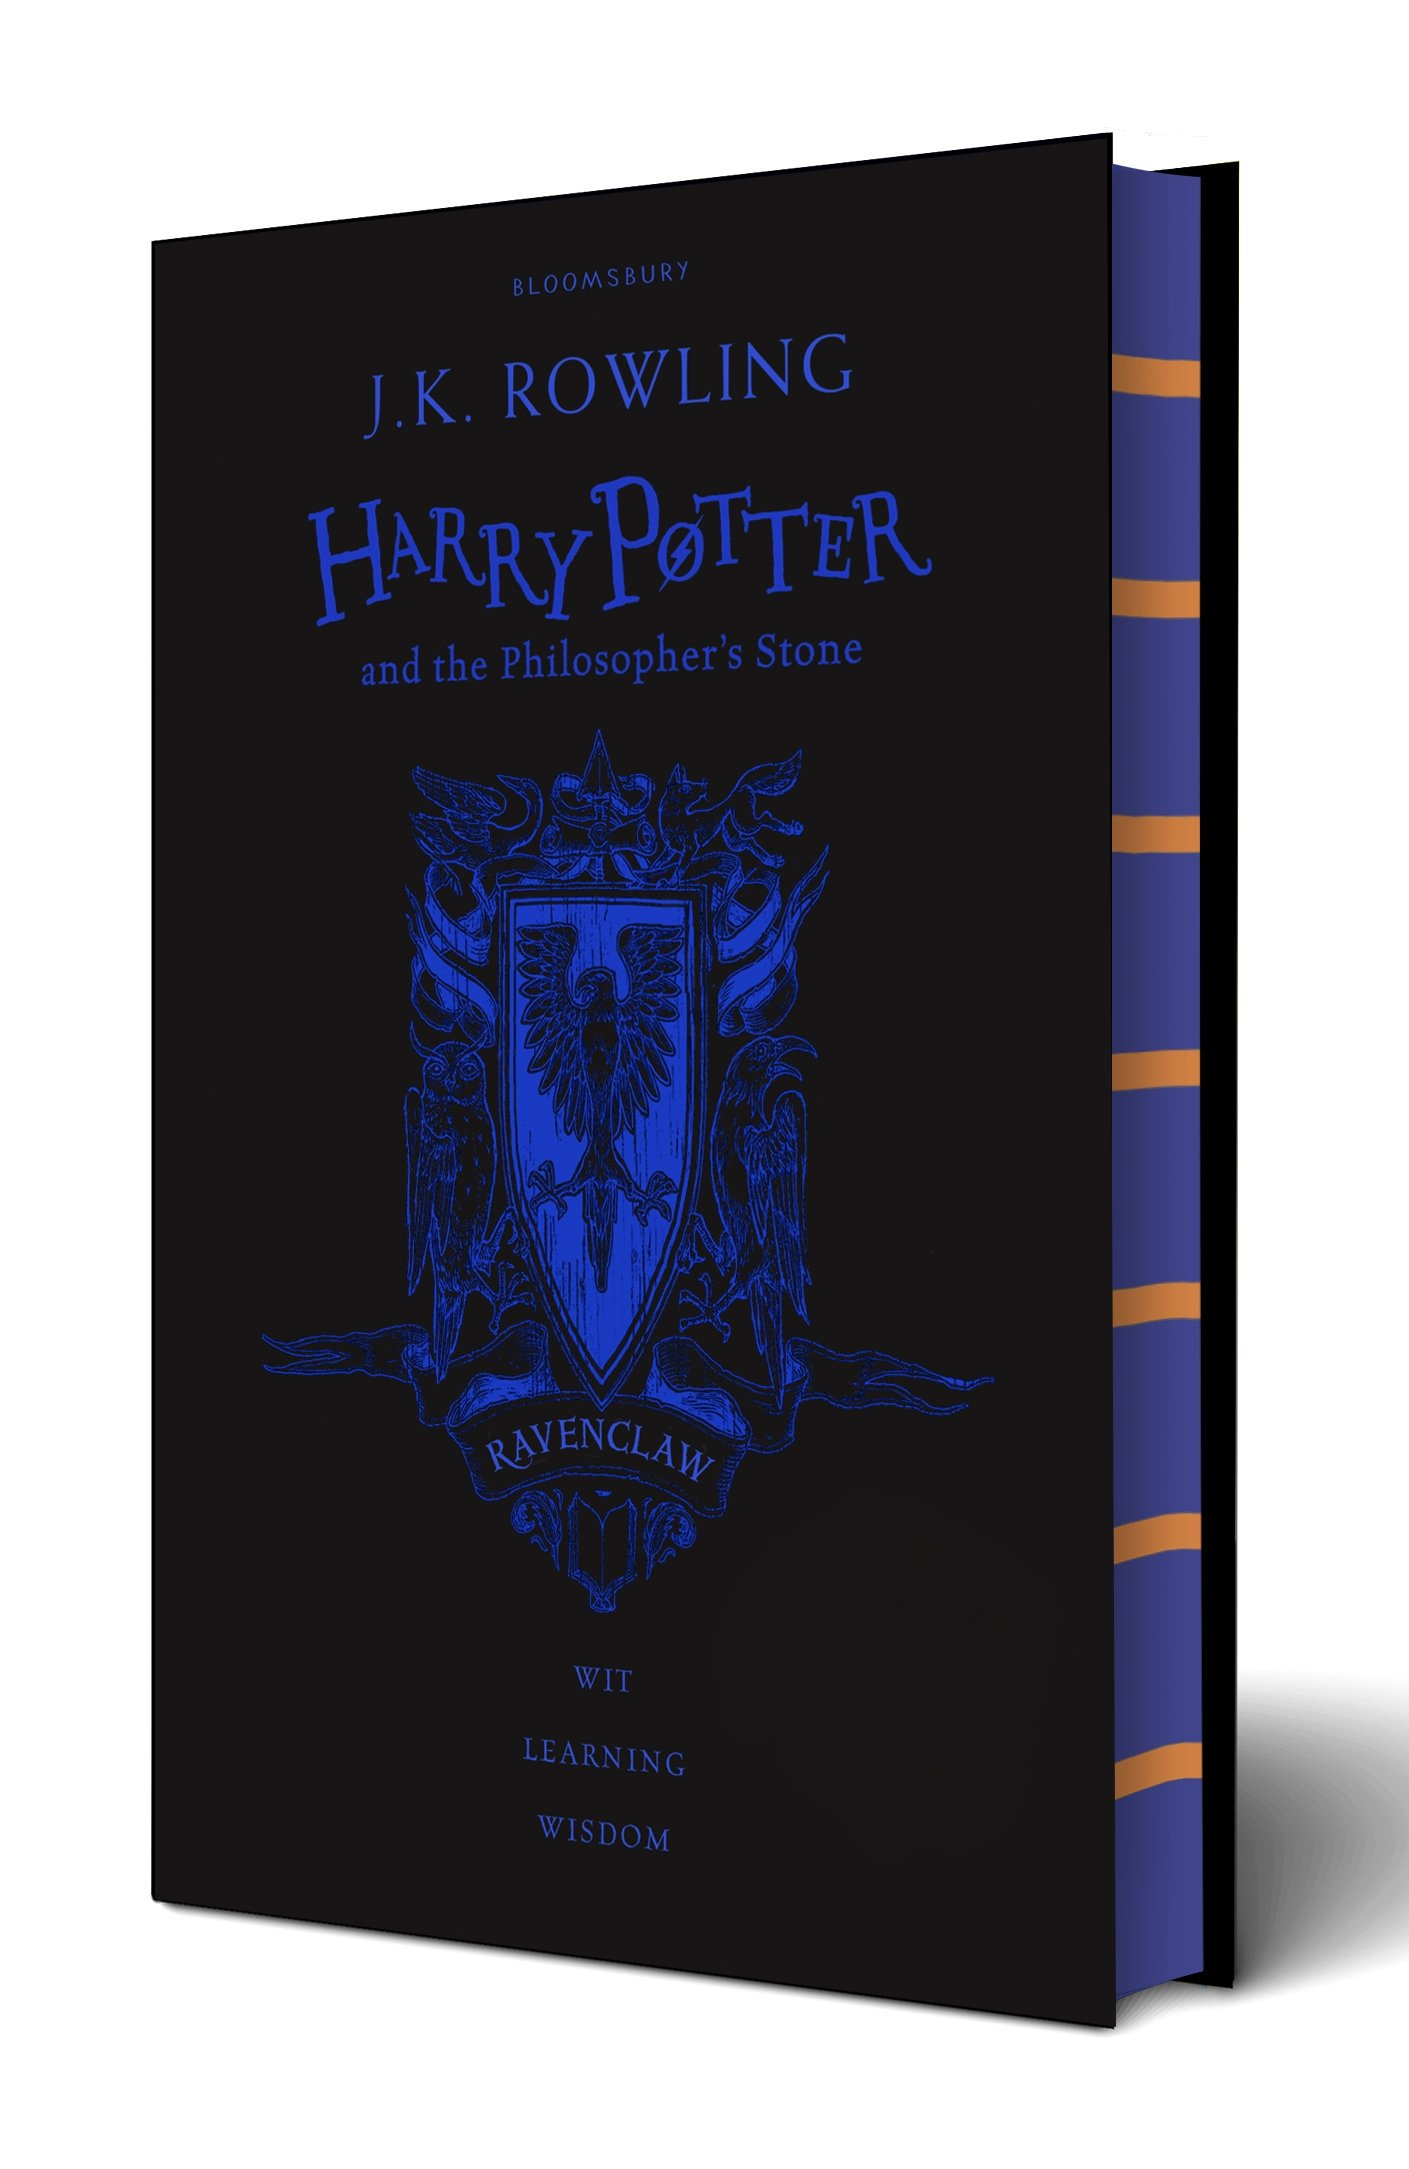 Harry Potter and the Philosopher's Stone: Ravenclaw Edition; Black and Blue